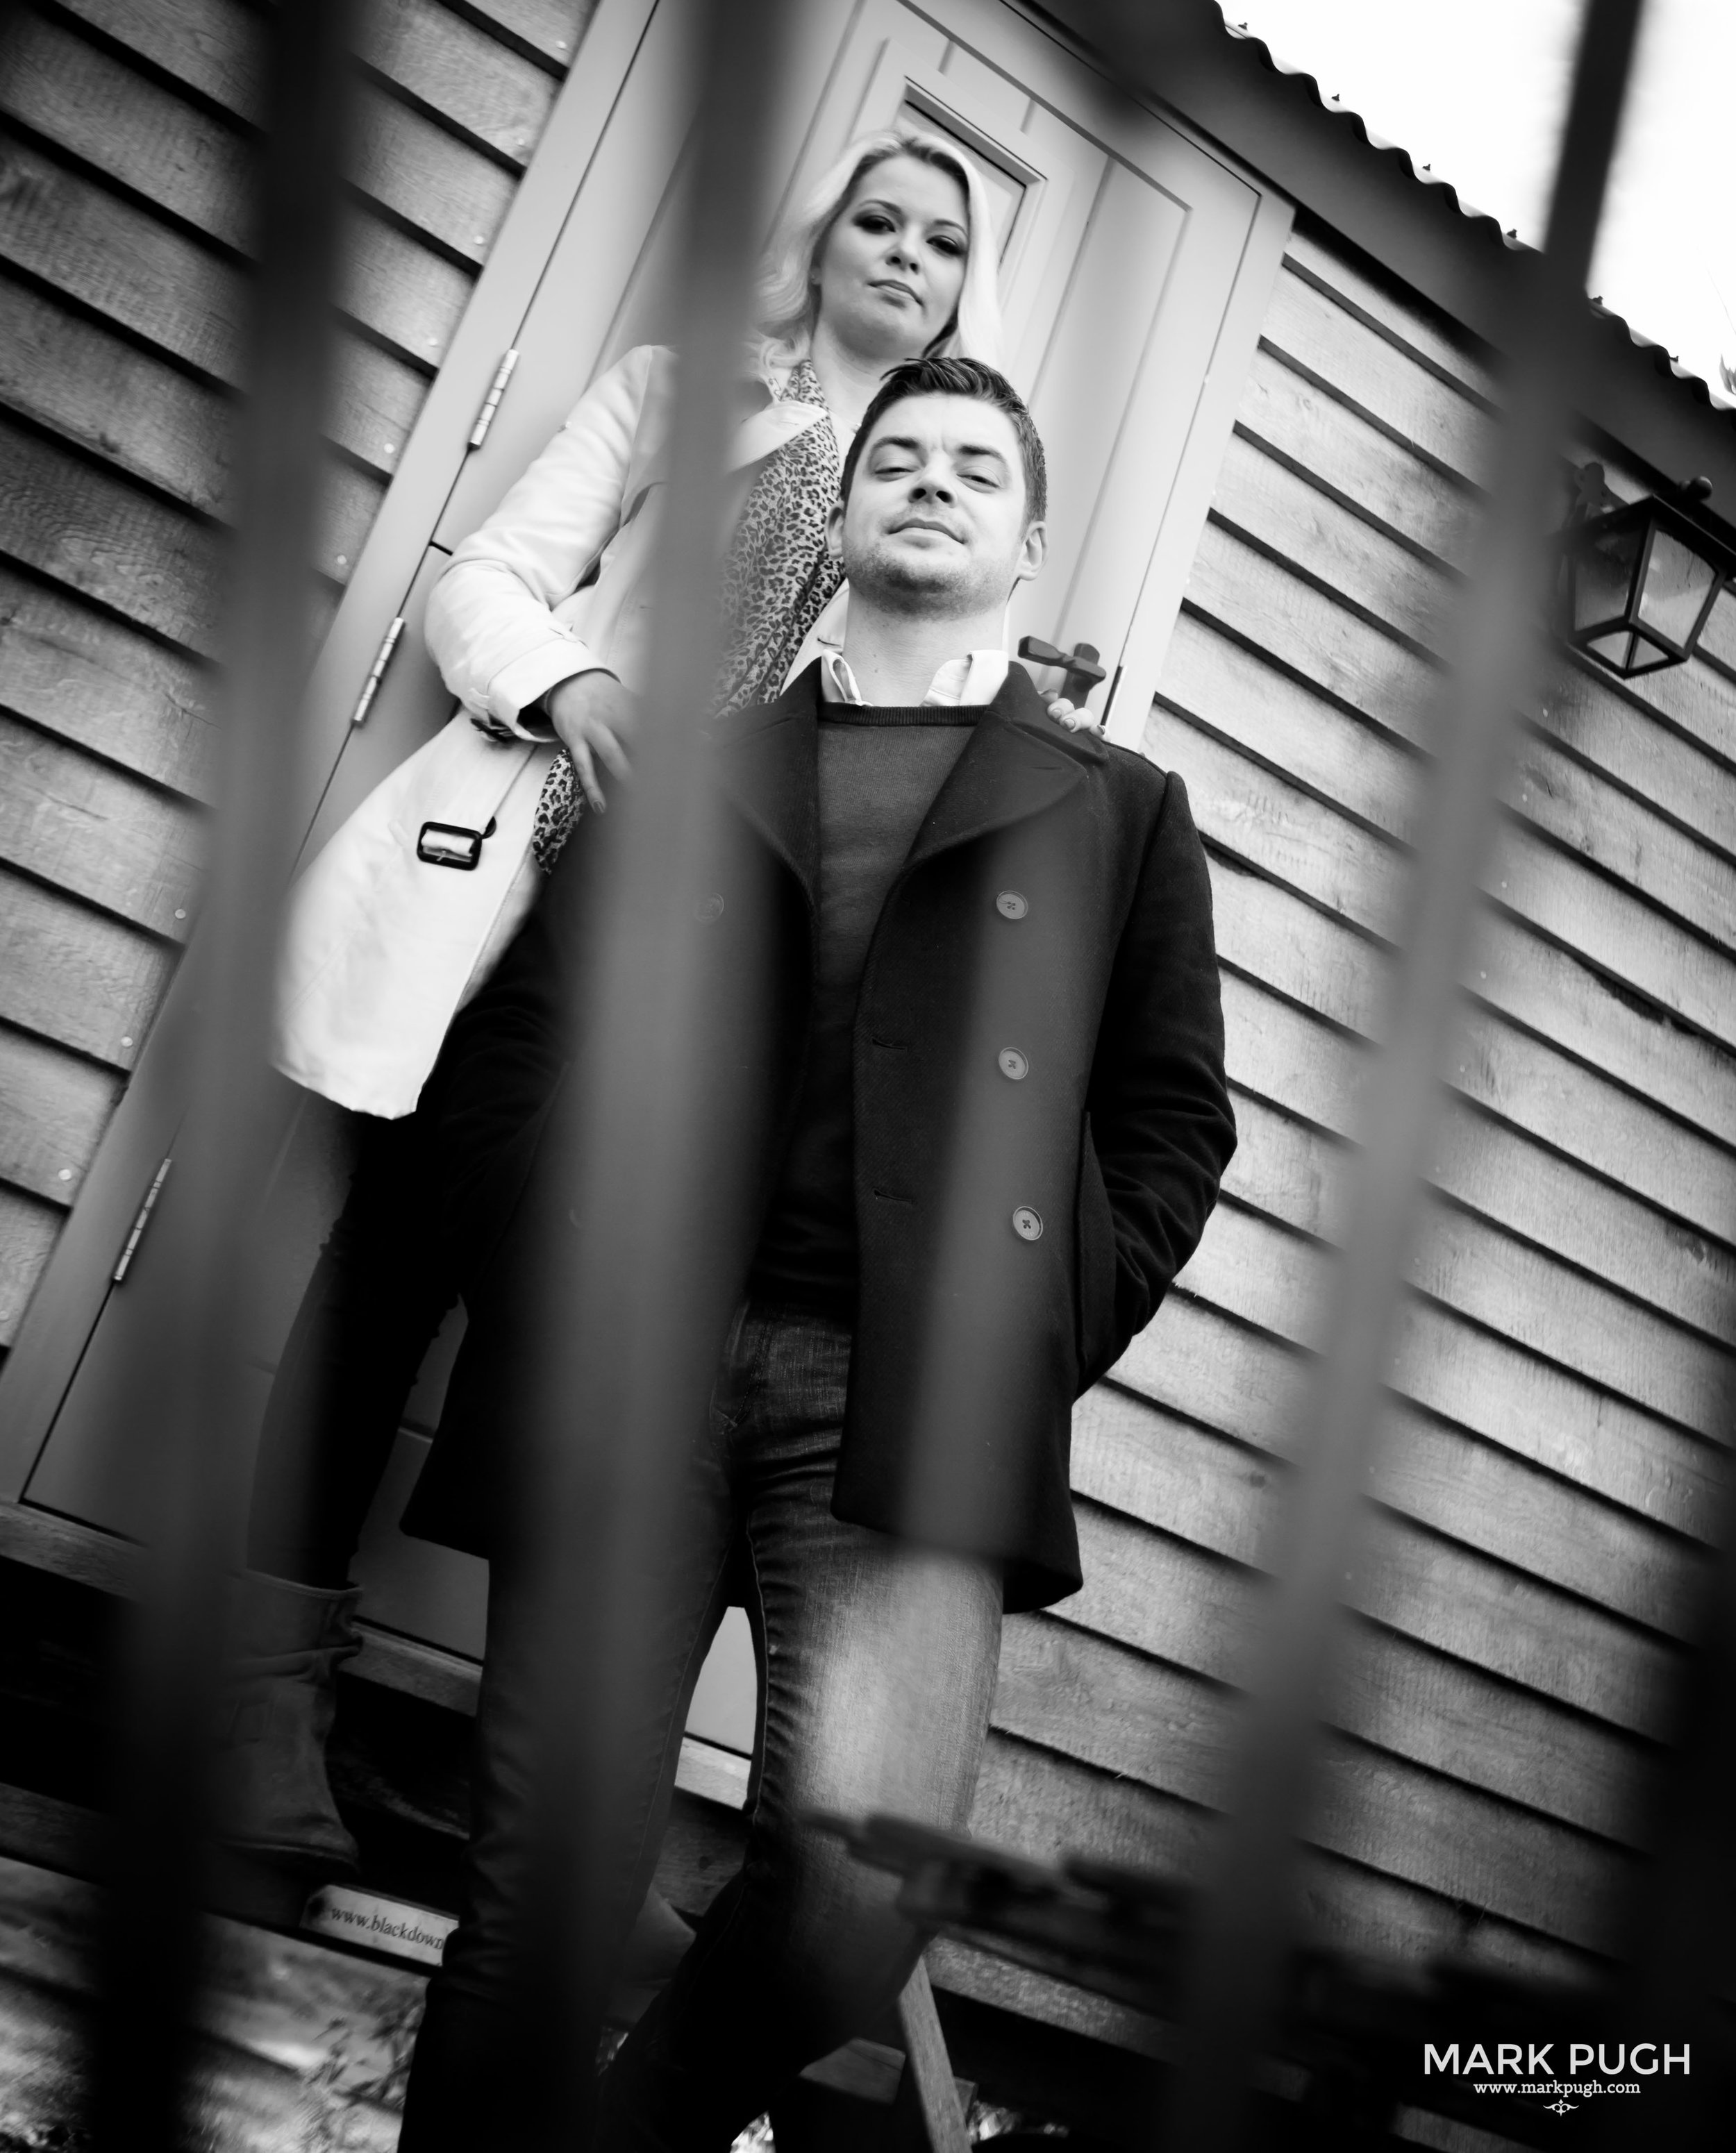 015 - Sam and Richard - fineART preWED at the Carriage Hall Station Road Plumtree Nottingham NG12 5NA by www.markpugh.com Mark Pugh of www.mpmedia.co.uk_.JPG